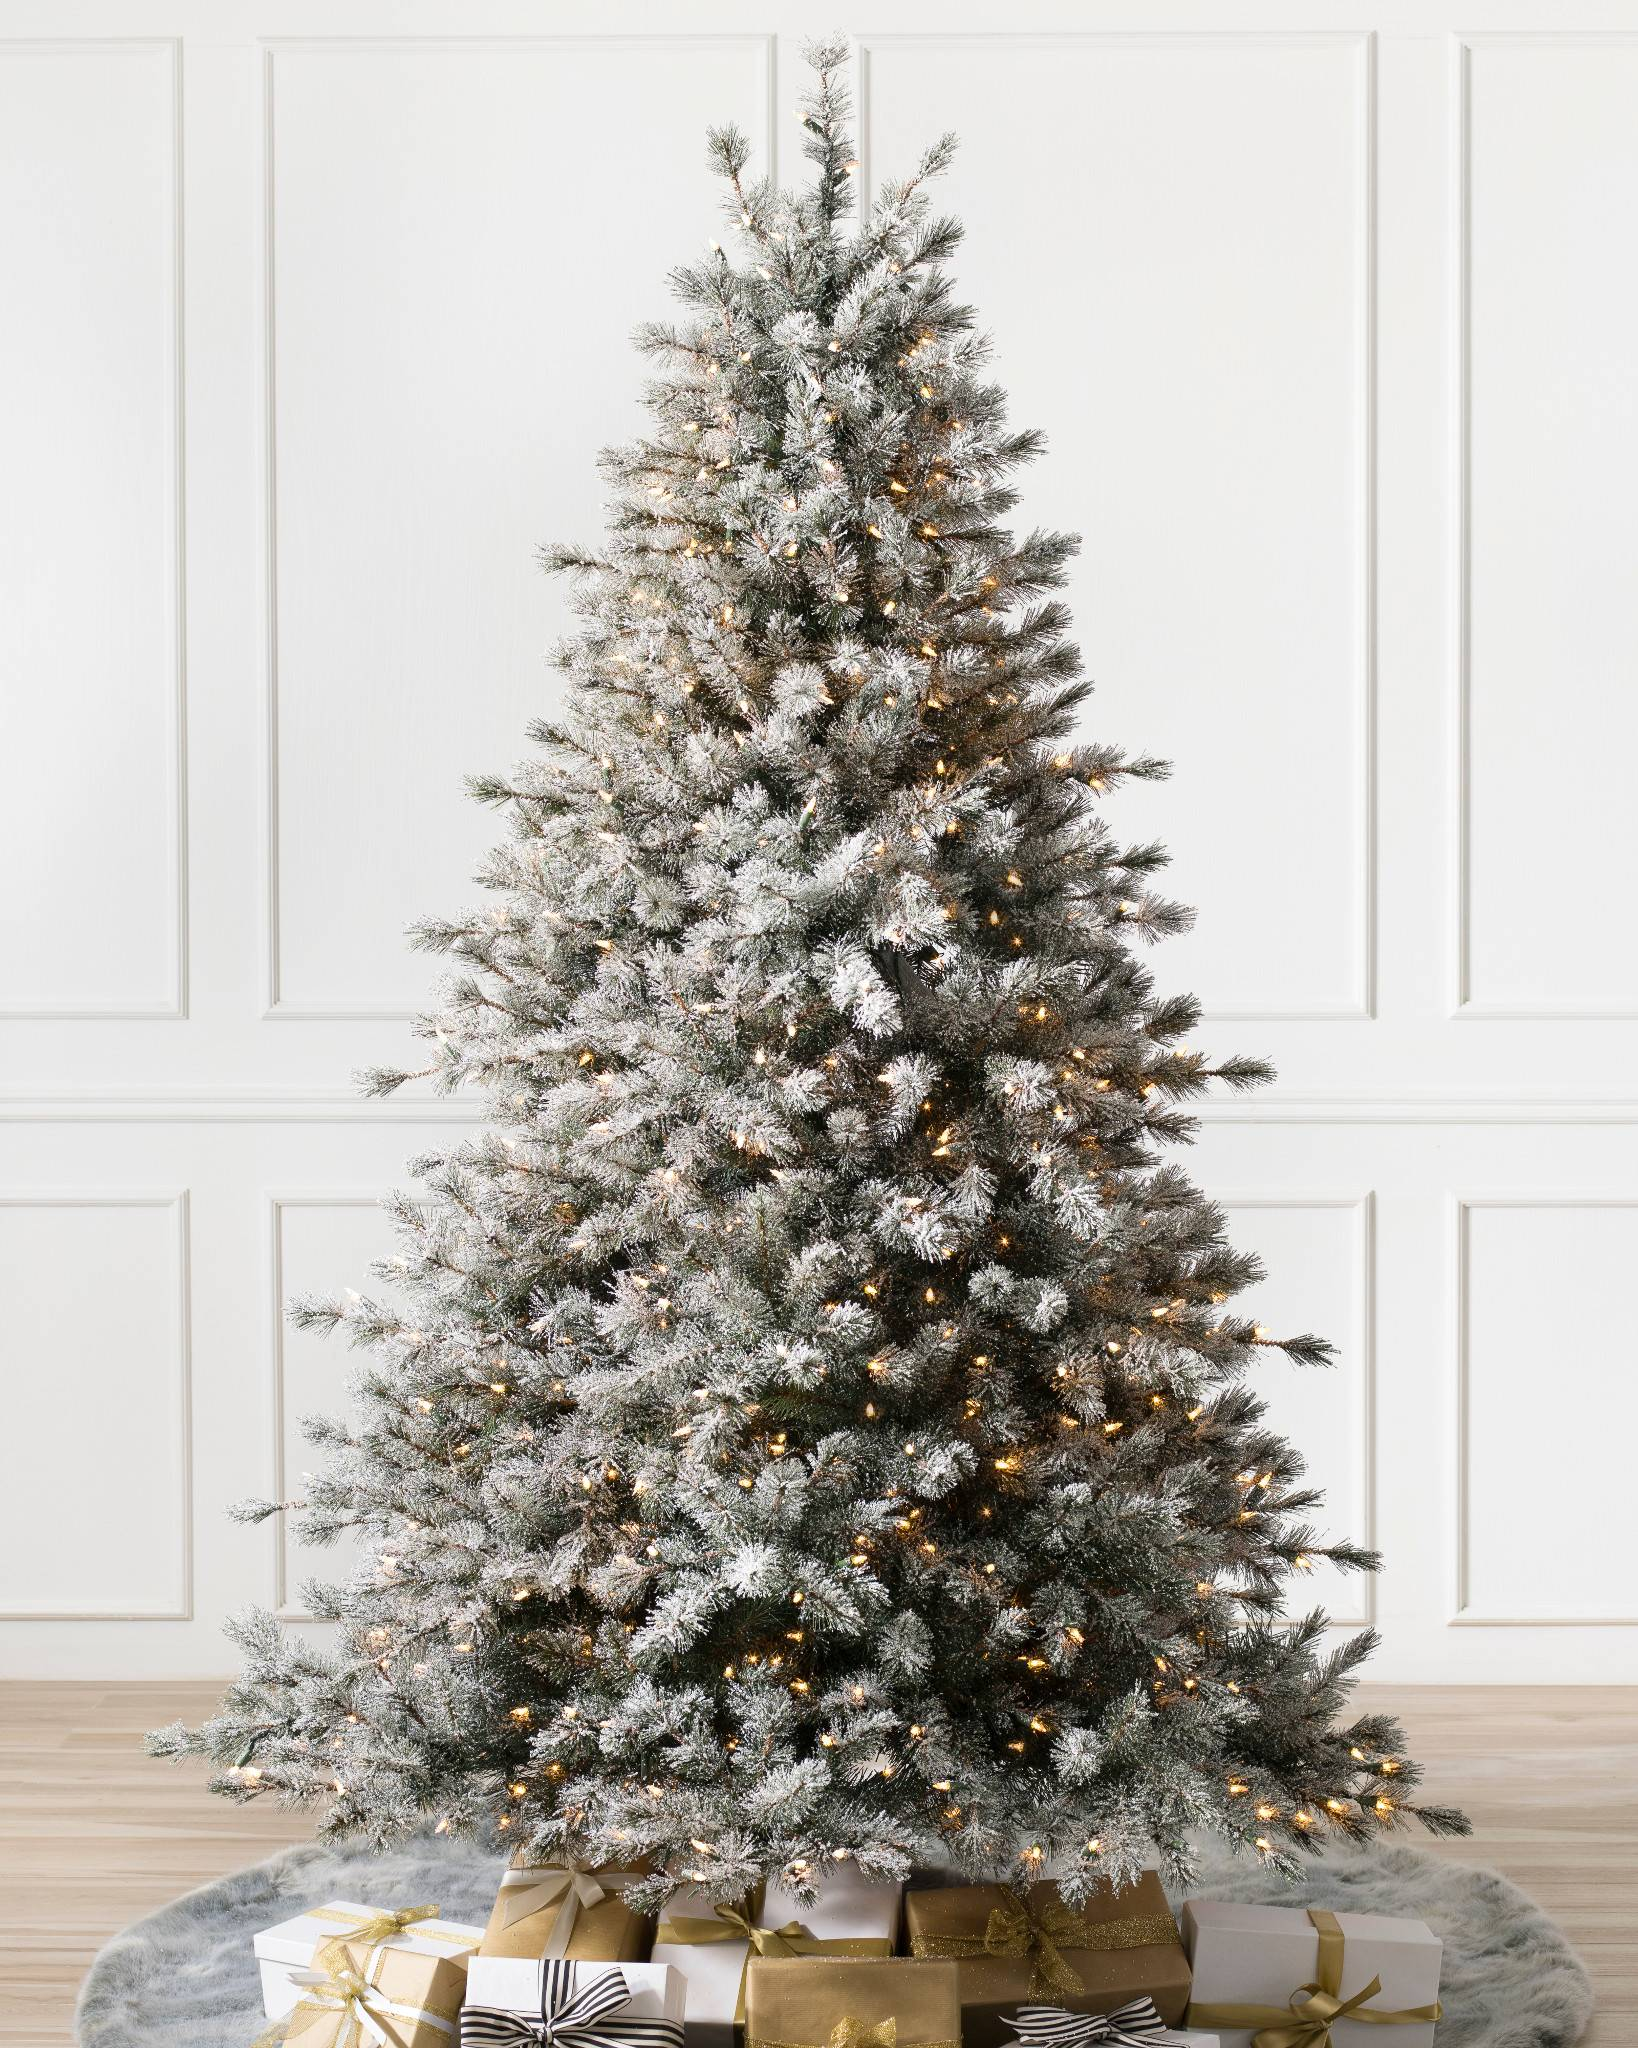 Balsam Hill Christmas Tree Co Reviews.Frosted Sugar Pine Narrow Christmas Tree Balsam Hill